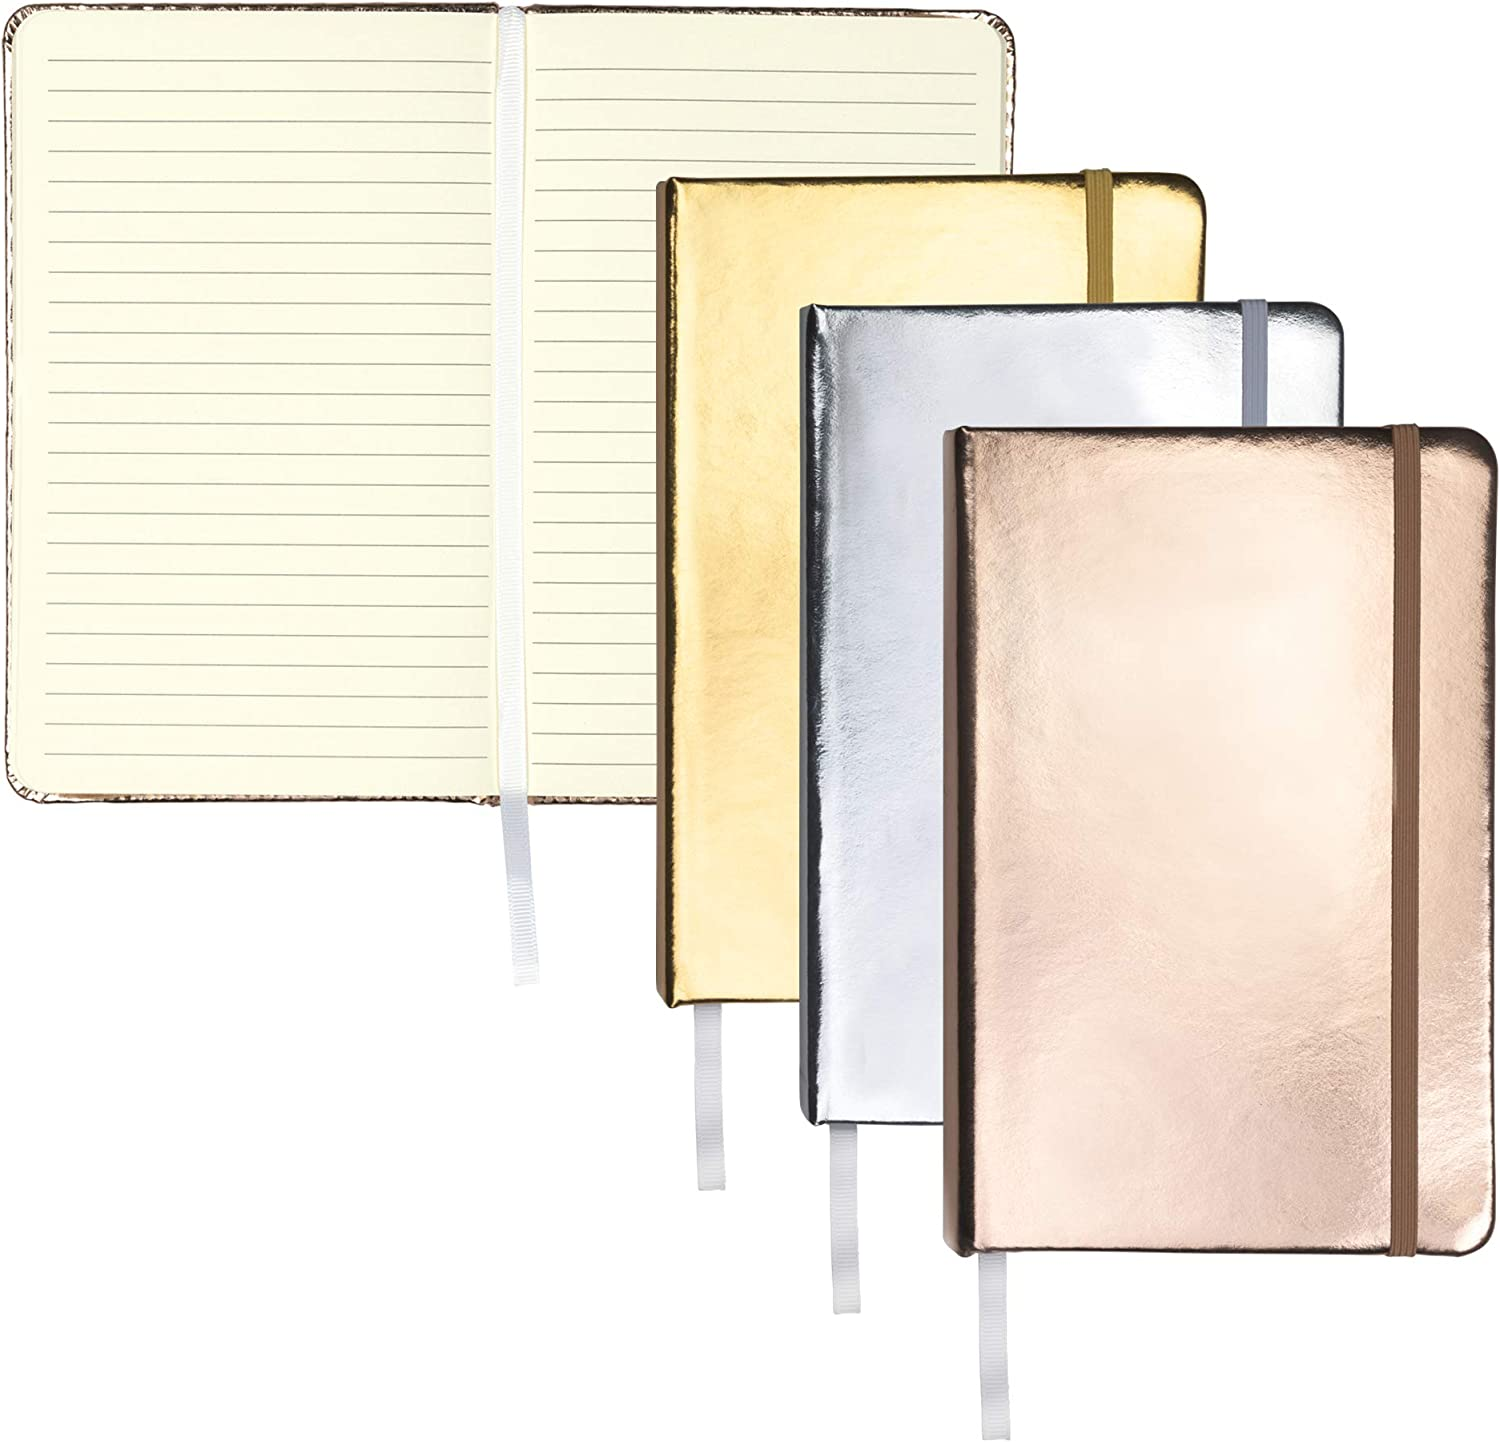 """Samsill 3 Pack Hardcover Writing Notebook, Metallic Journal Gift Set Includes 1 Silver, Gold, and Rose Gold Journal, Classic 5.25"""" x 8.25"""" Lined Journal"""